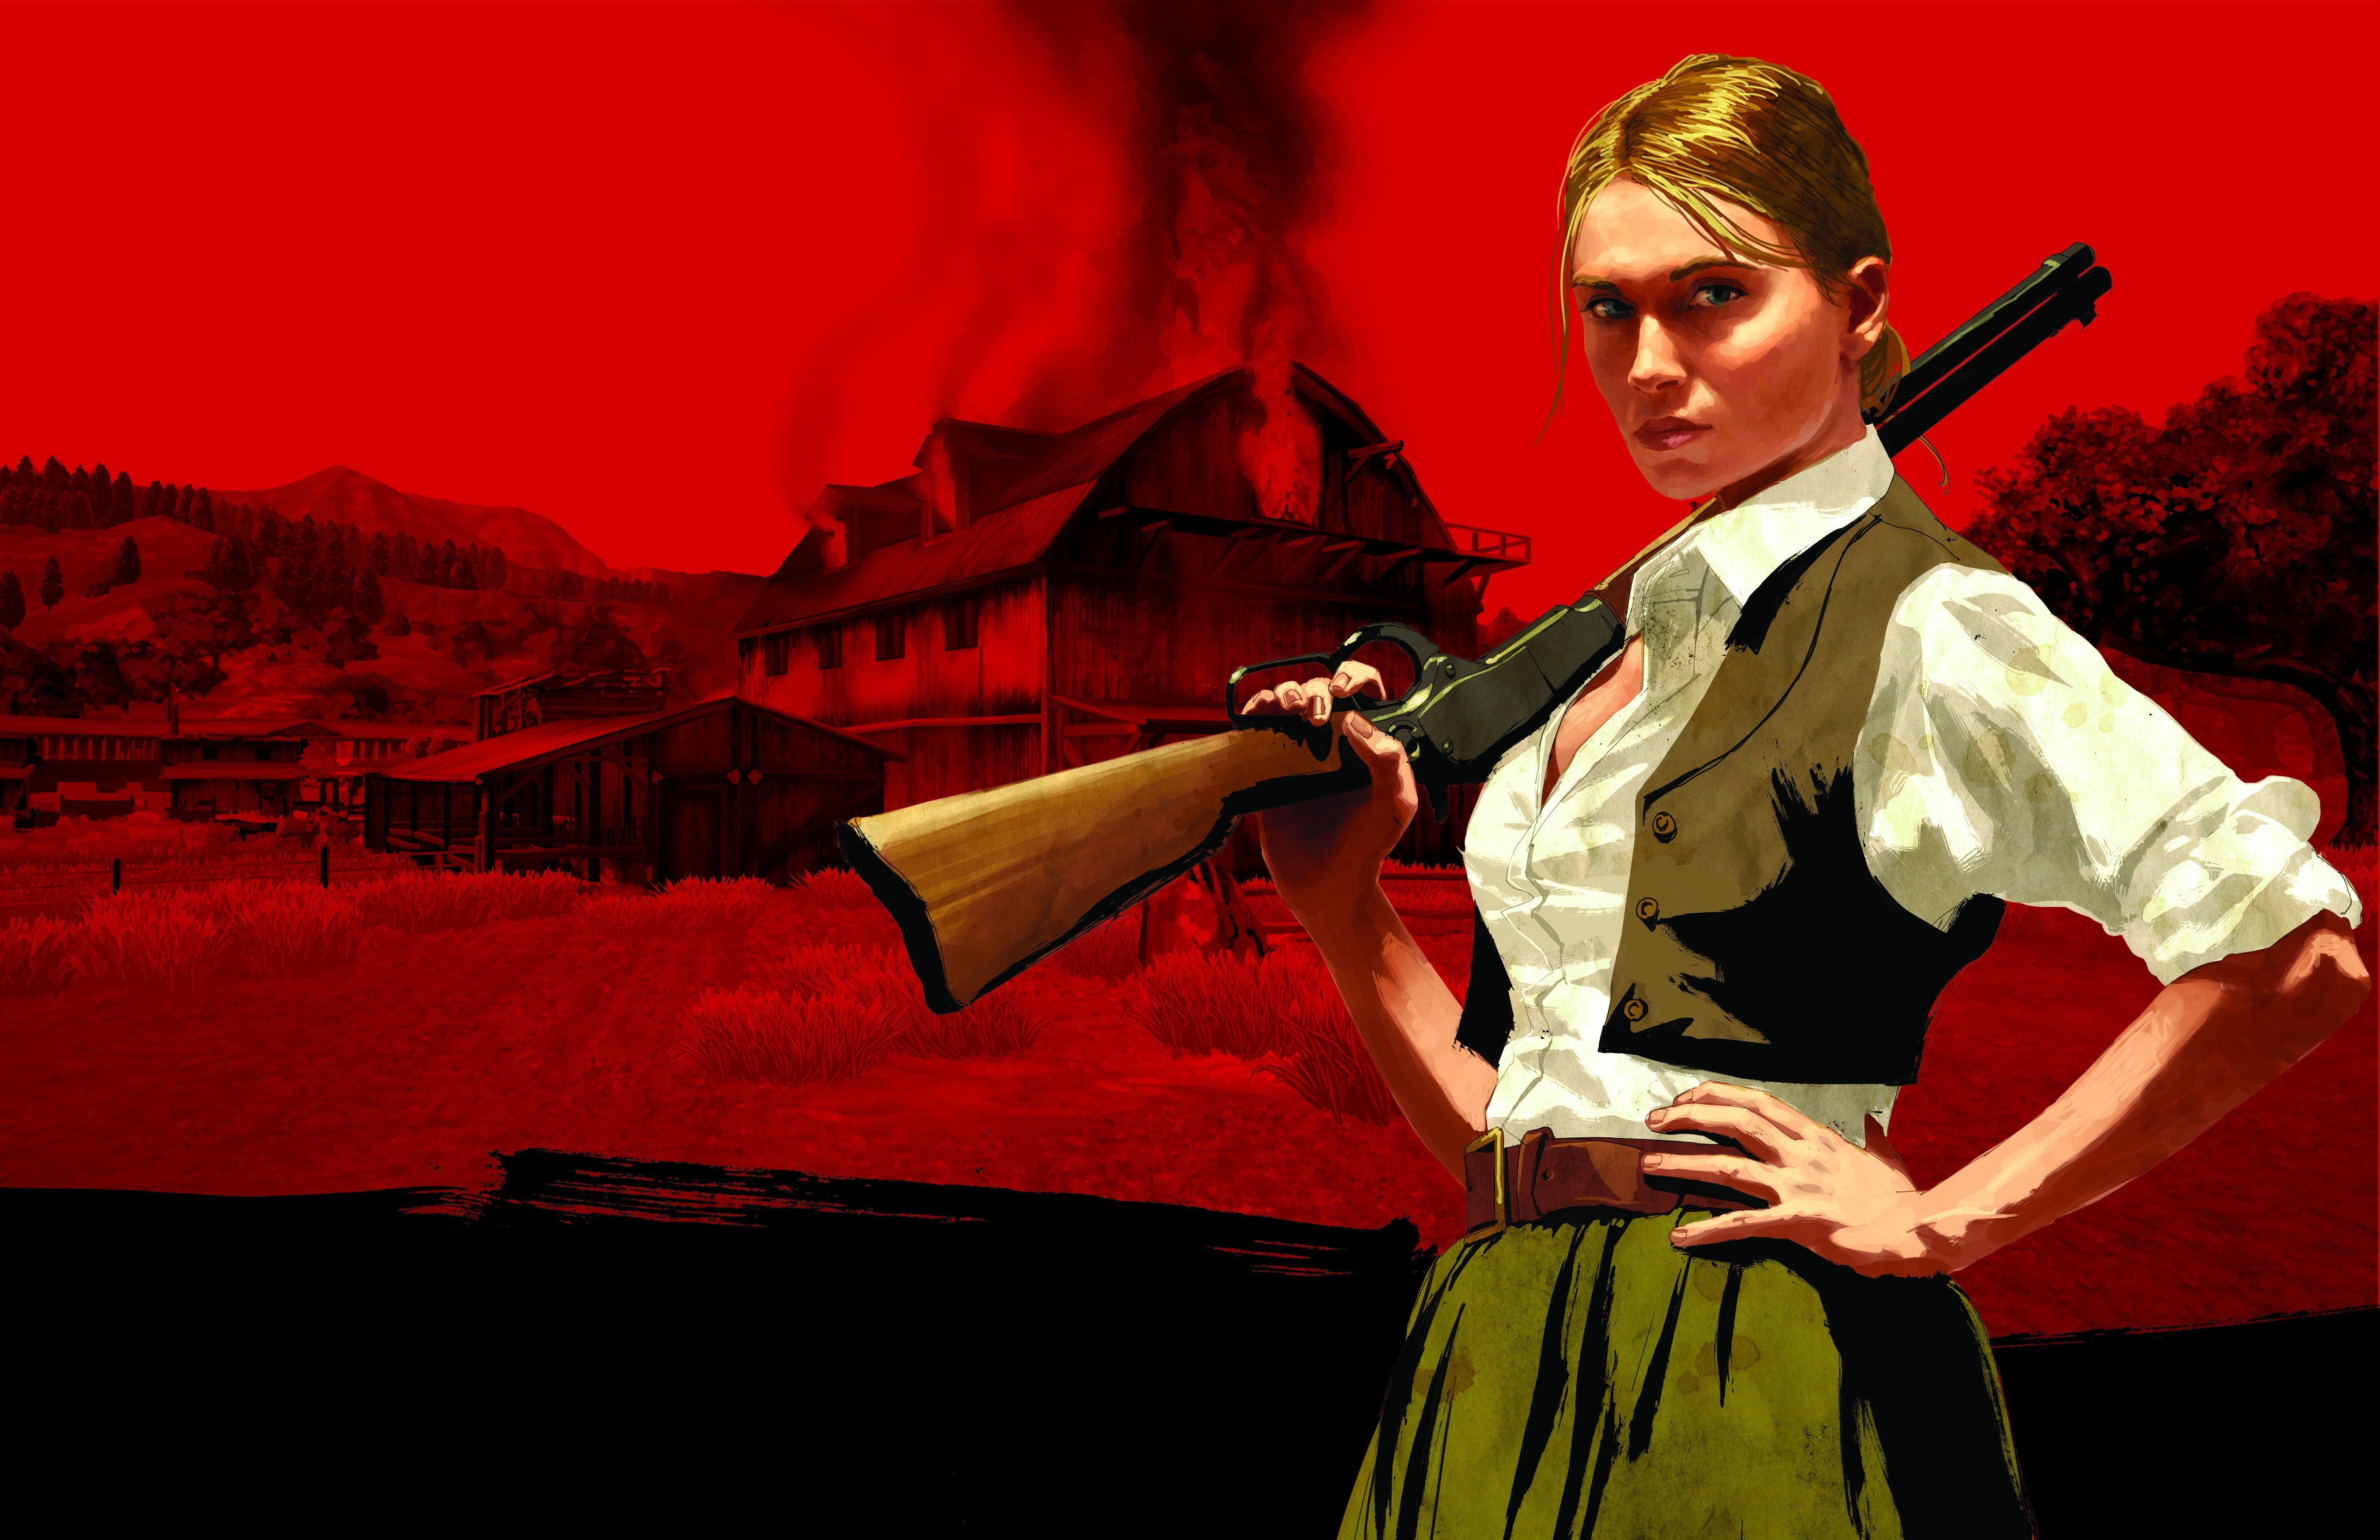 Bonnie Macfarlane Red Dead Redemption Wallpapers Hd Desktop And